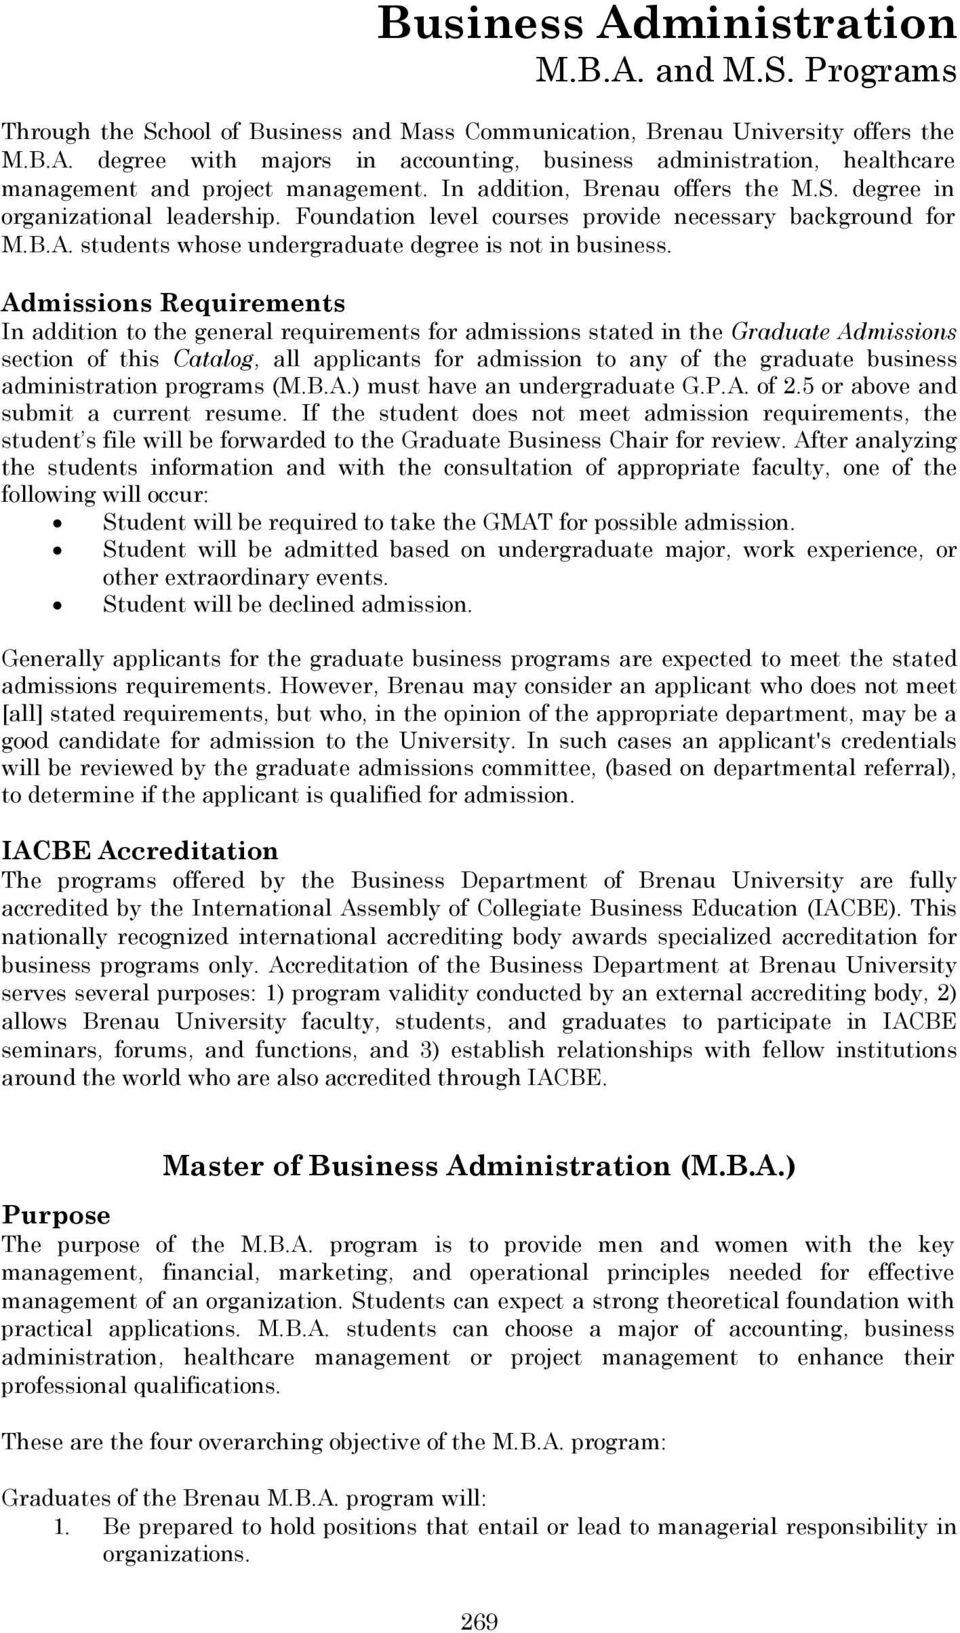 Admissions Requirements In addition to the general requirements for admissions stated in the Graduate Admissions section of this Catalog, all applicants for admission to any of the graduate business